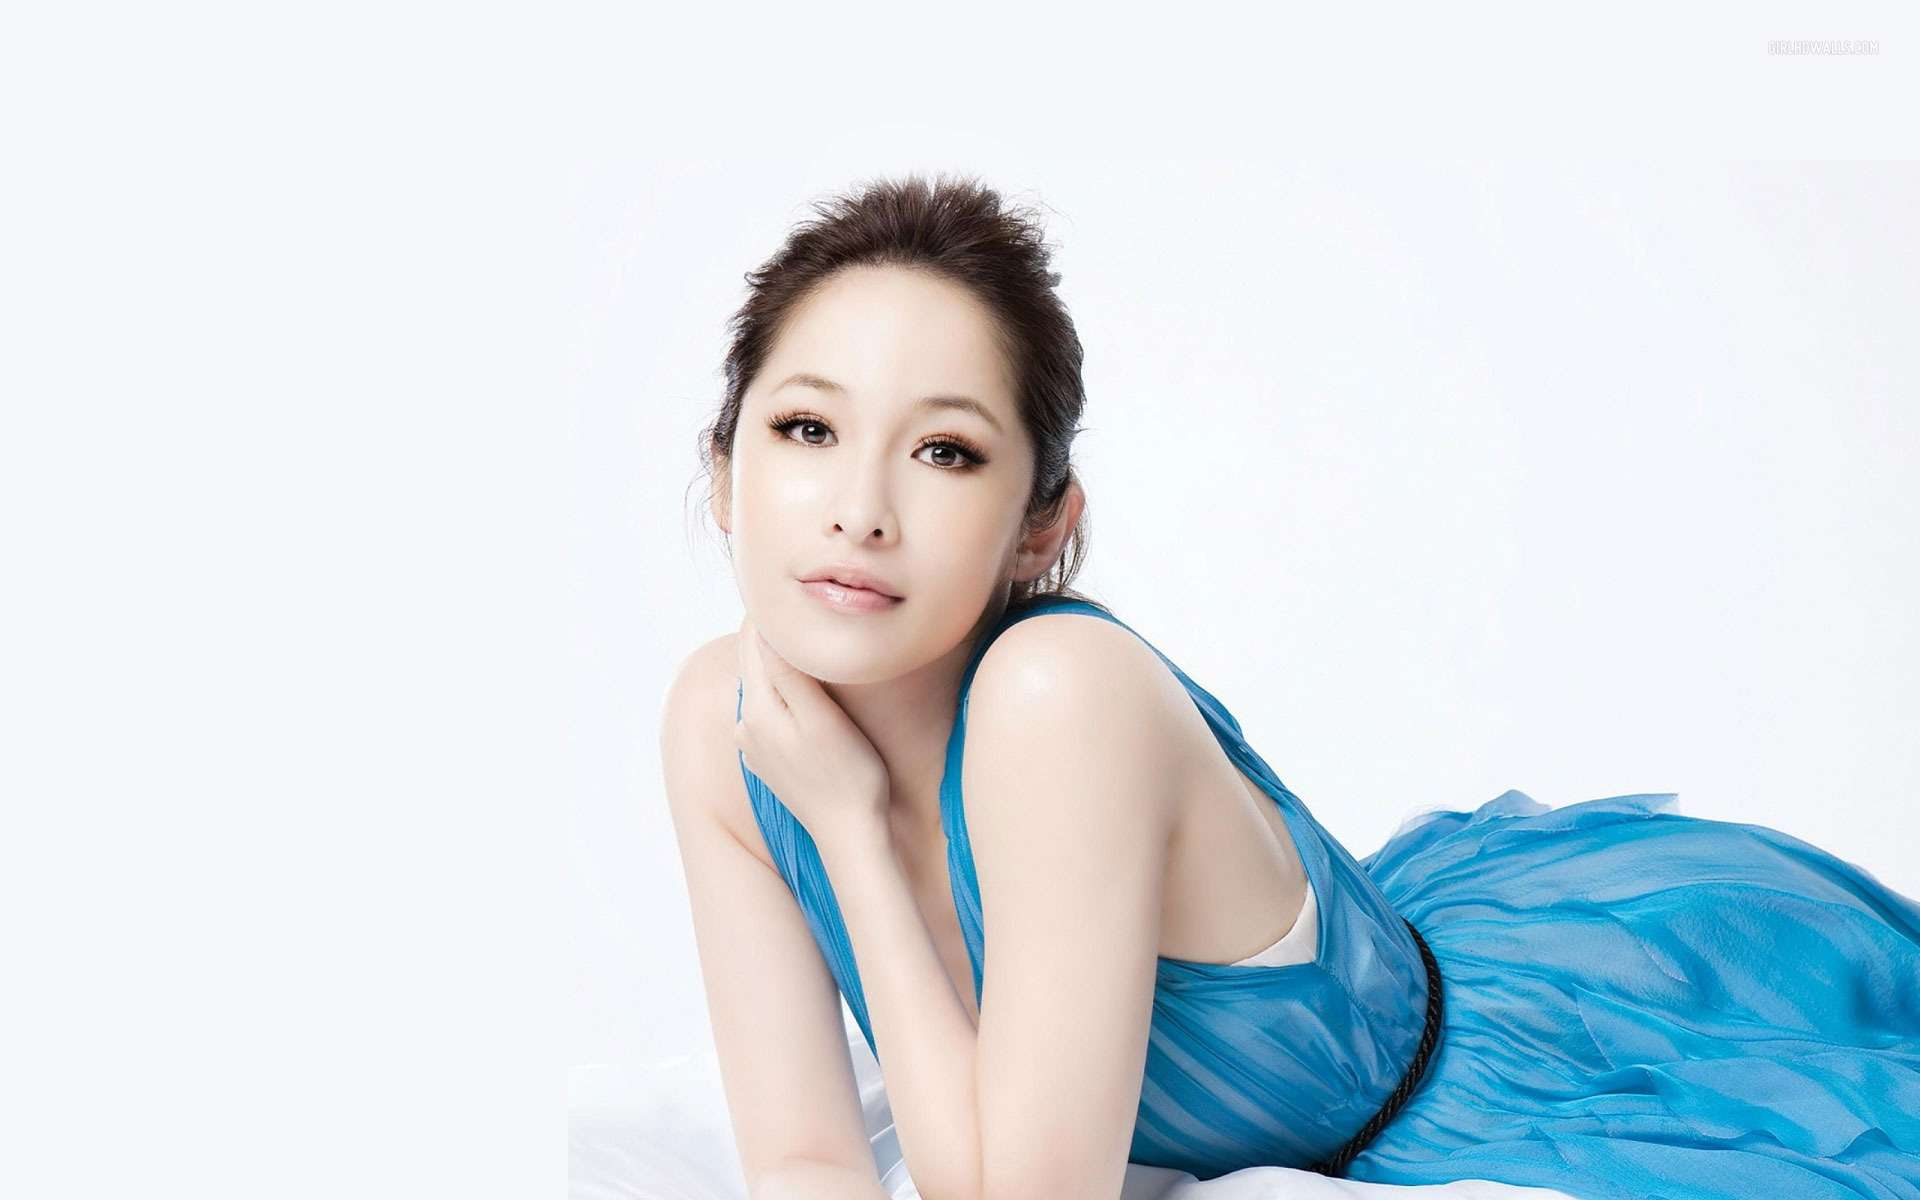 Most Beautiful Girl With Flowers Hd Wallpapers Elva Hsiao 2 Wallpapers Hd Wallpapers